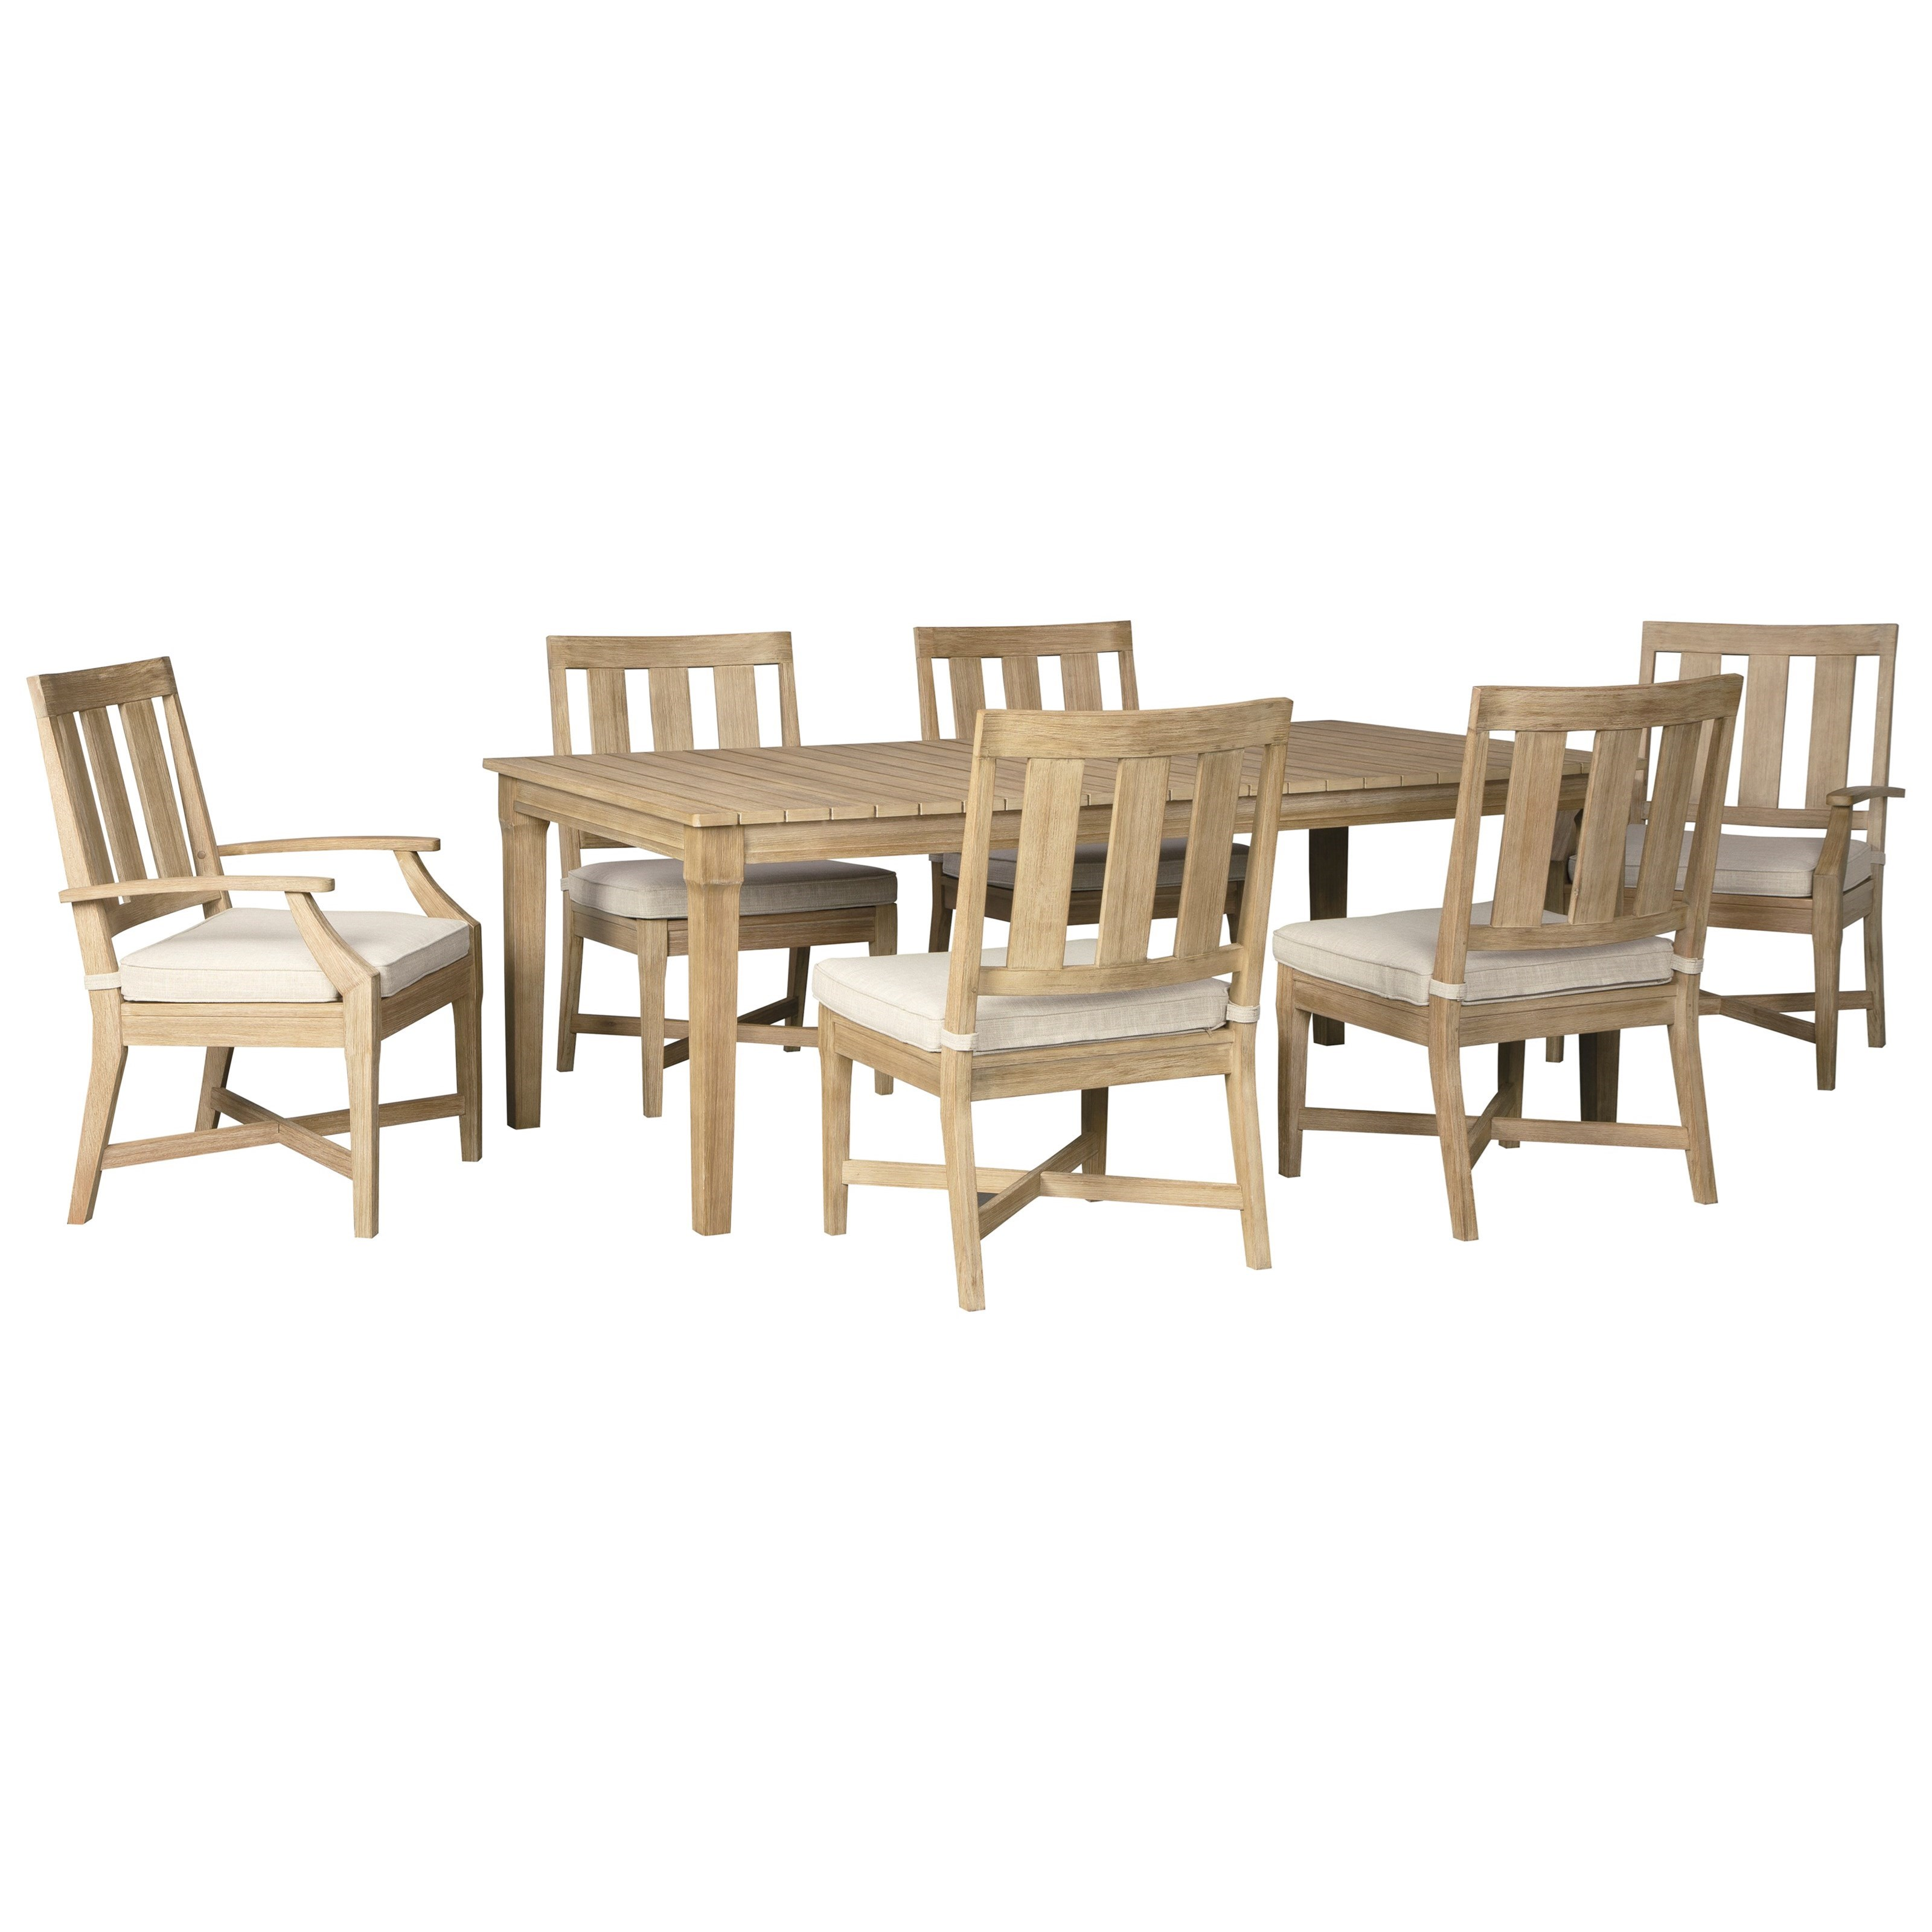 Clare View 7 Piece Outdoor Dining Set by Ashley (Signature Design) at Johnny Janosik